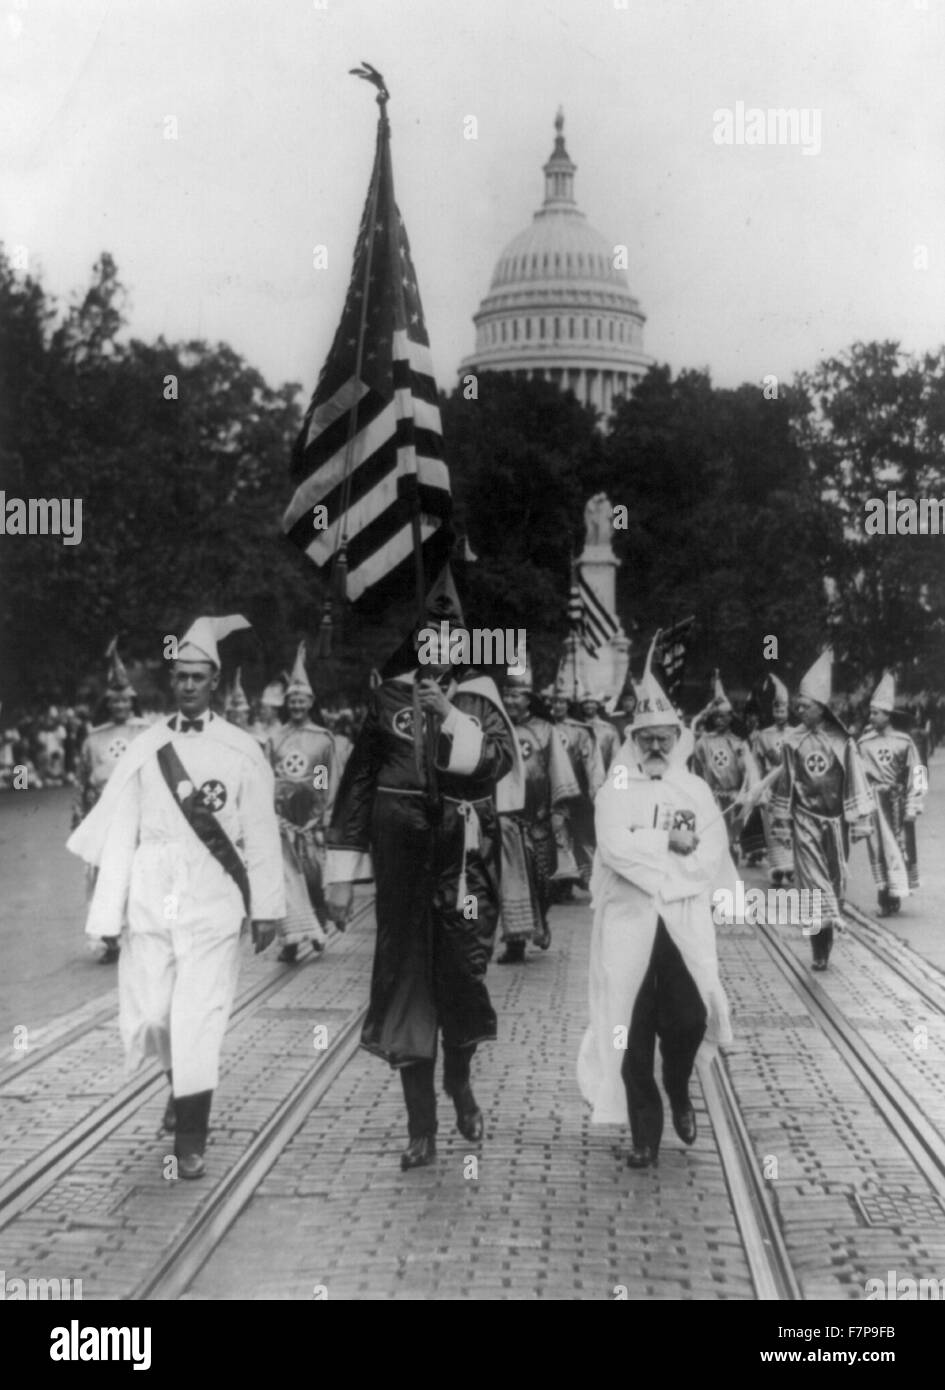 Photographic print shows a group parading on the street in front of the dome of the U.S. Capitol. In the background, - Stock Image